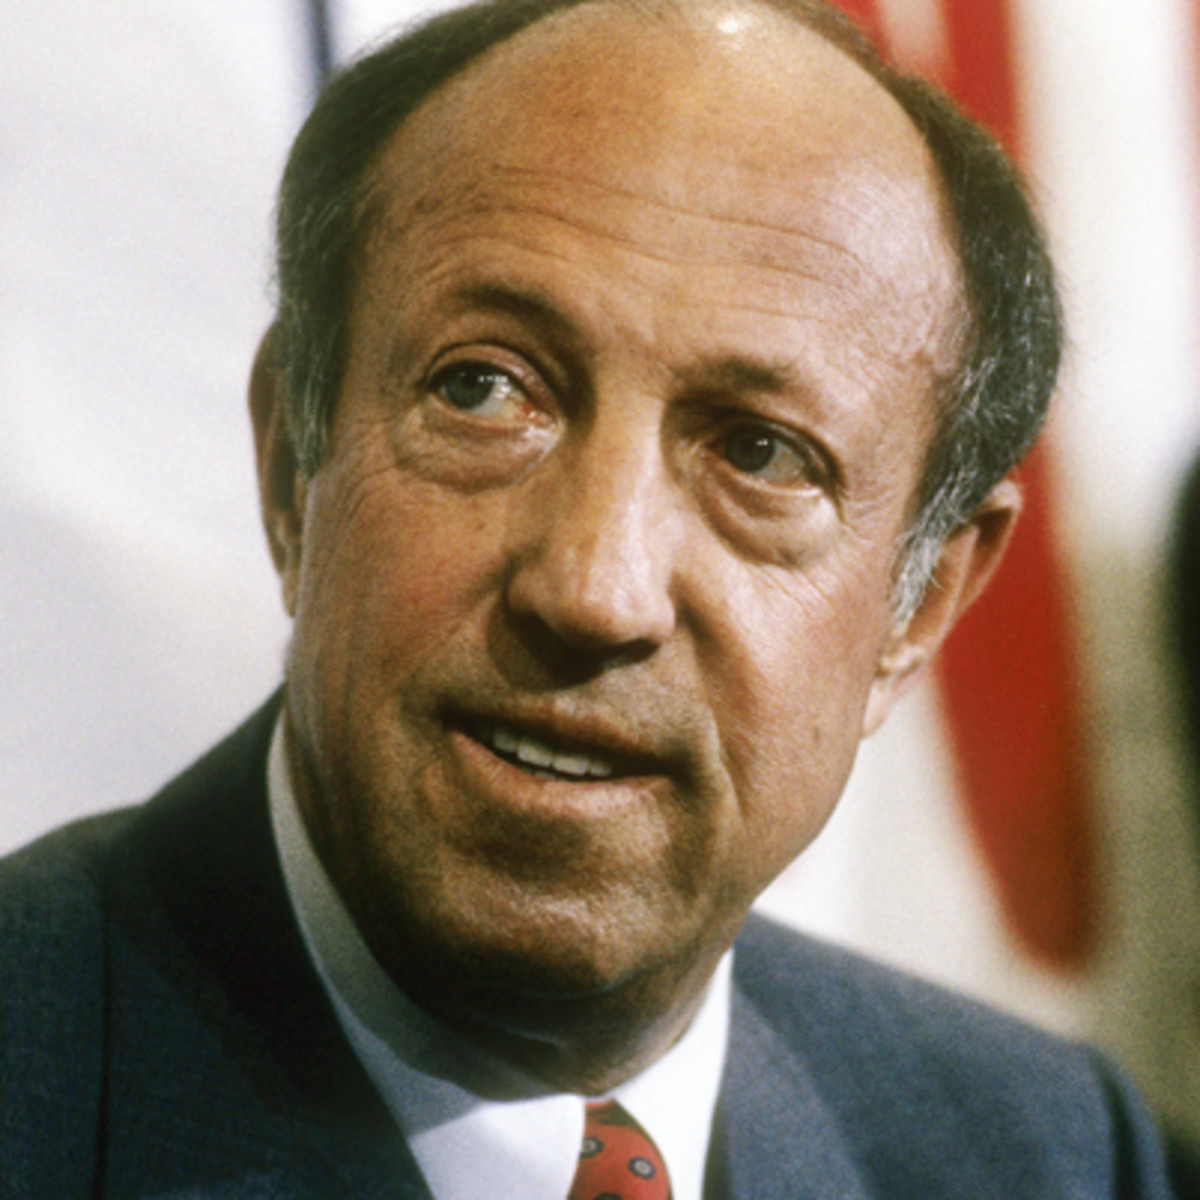 pete rozelle Pete rozelle, the commissioner who presided over the changes that made the national football league the premier professional sports organization over the last four decades, died at his home.